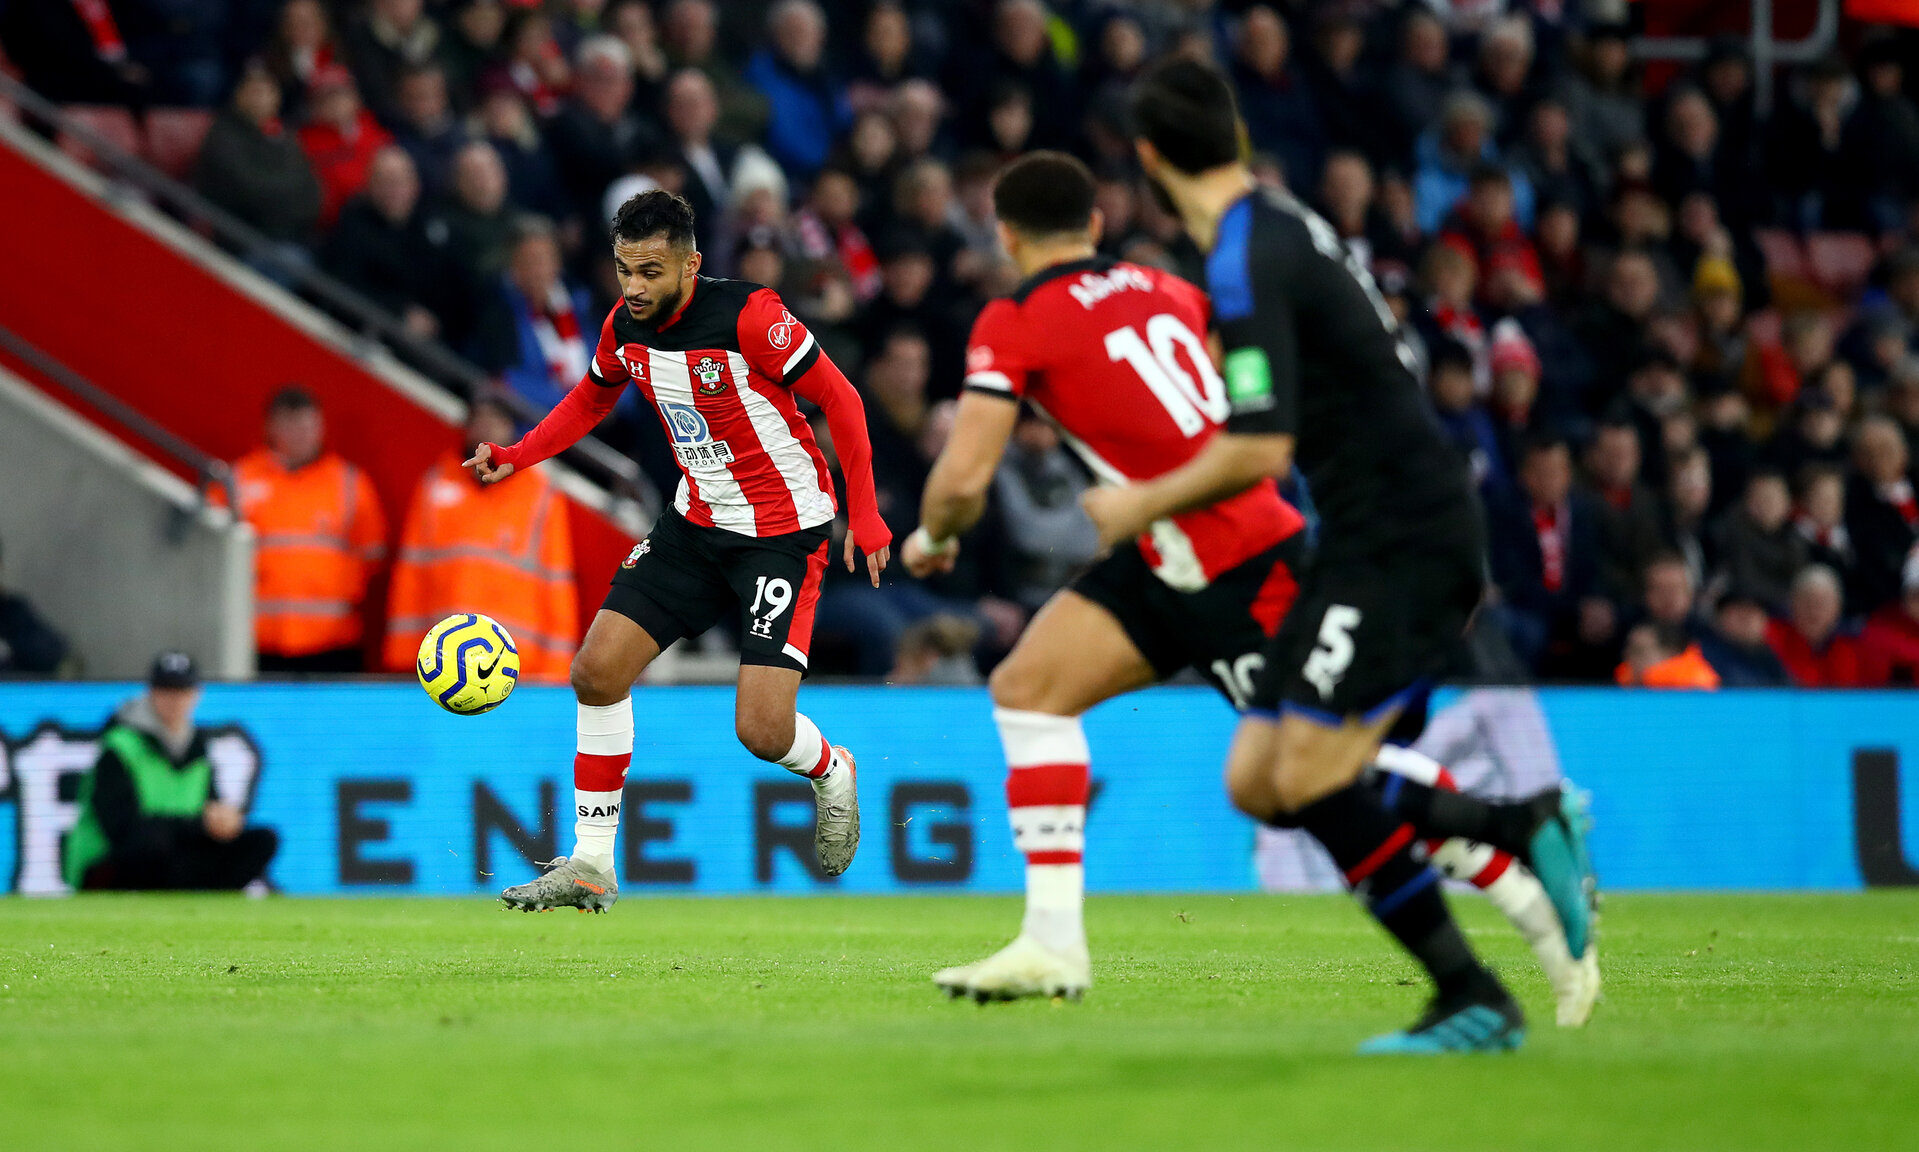 SOUTHAMPTON, ENGLAND - DECEMBER 28: Sofiane Boufal of Southampton during the Premier League match between Southampton FC and Crystal Palace at St Mary's Stadium on December 28, 2019 in Southampton, United Kingdom. (Photo by Matt Watson/Southampton FC via Getty Images)